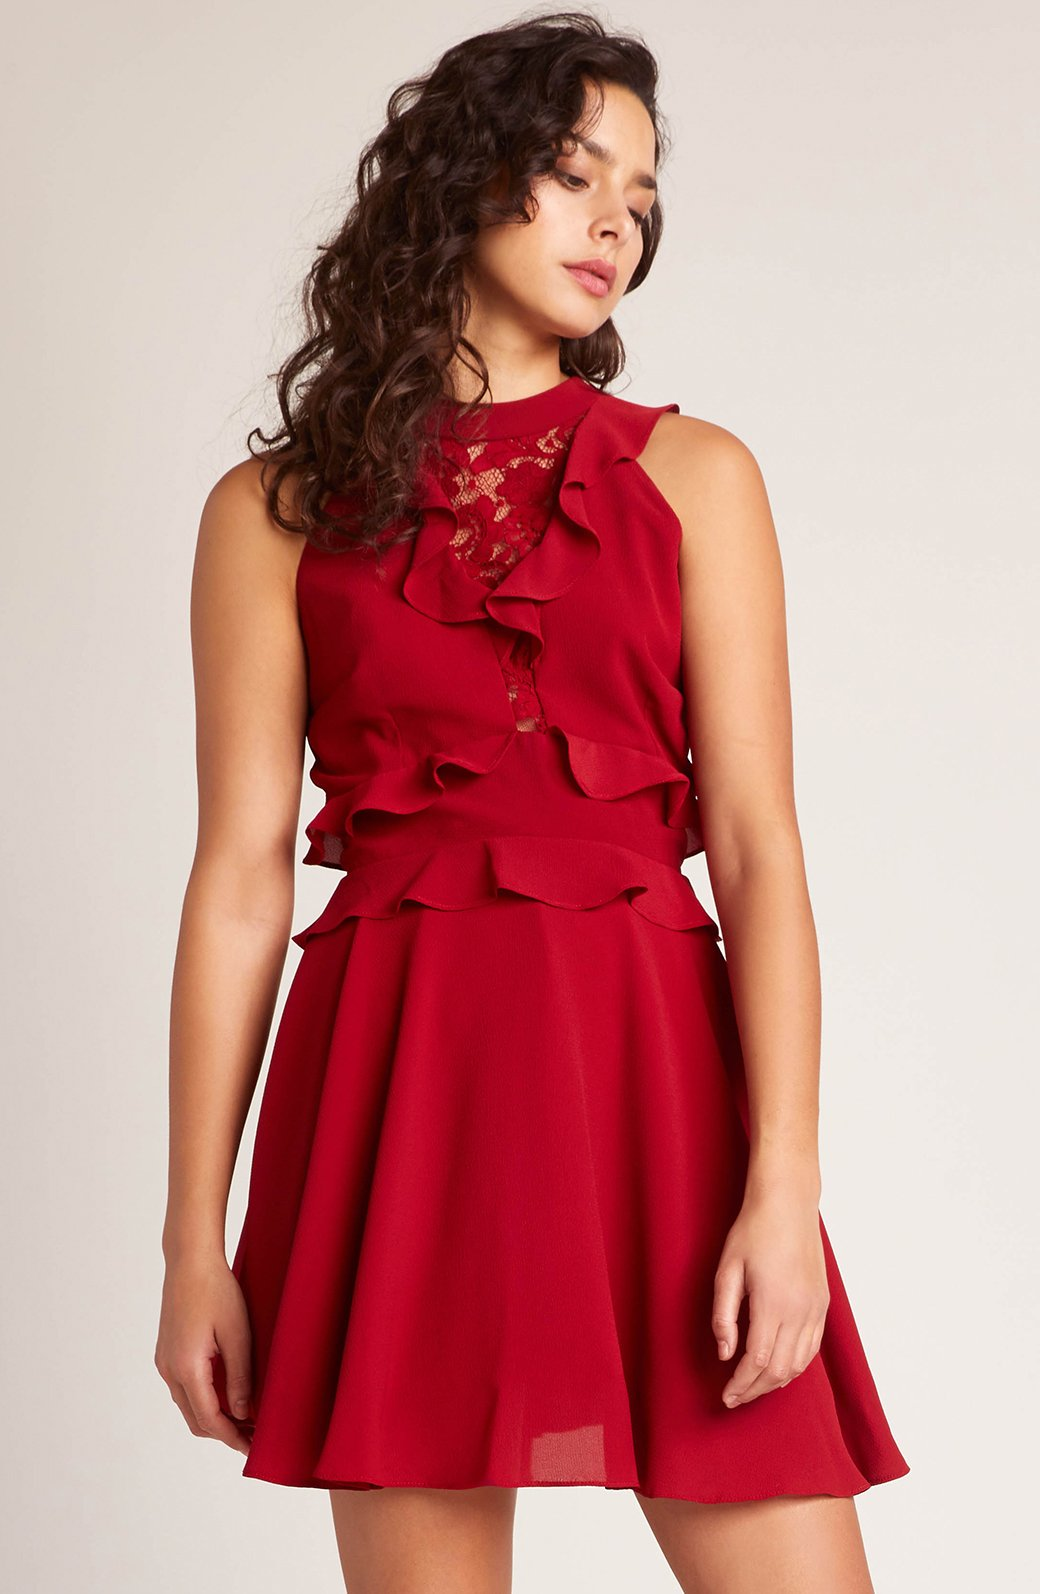 Crazy In Love Ruffle Dress